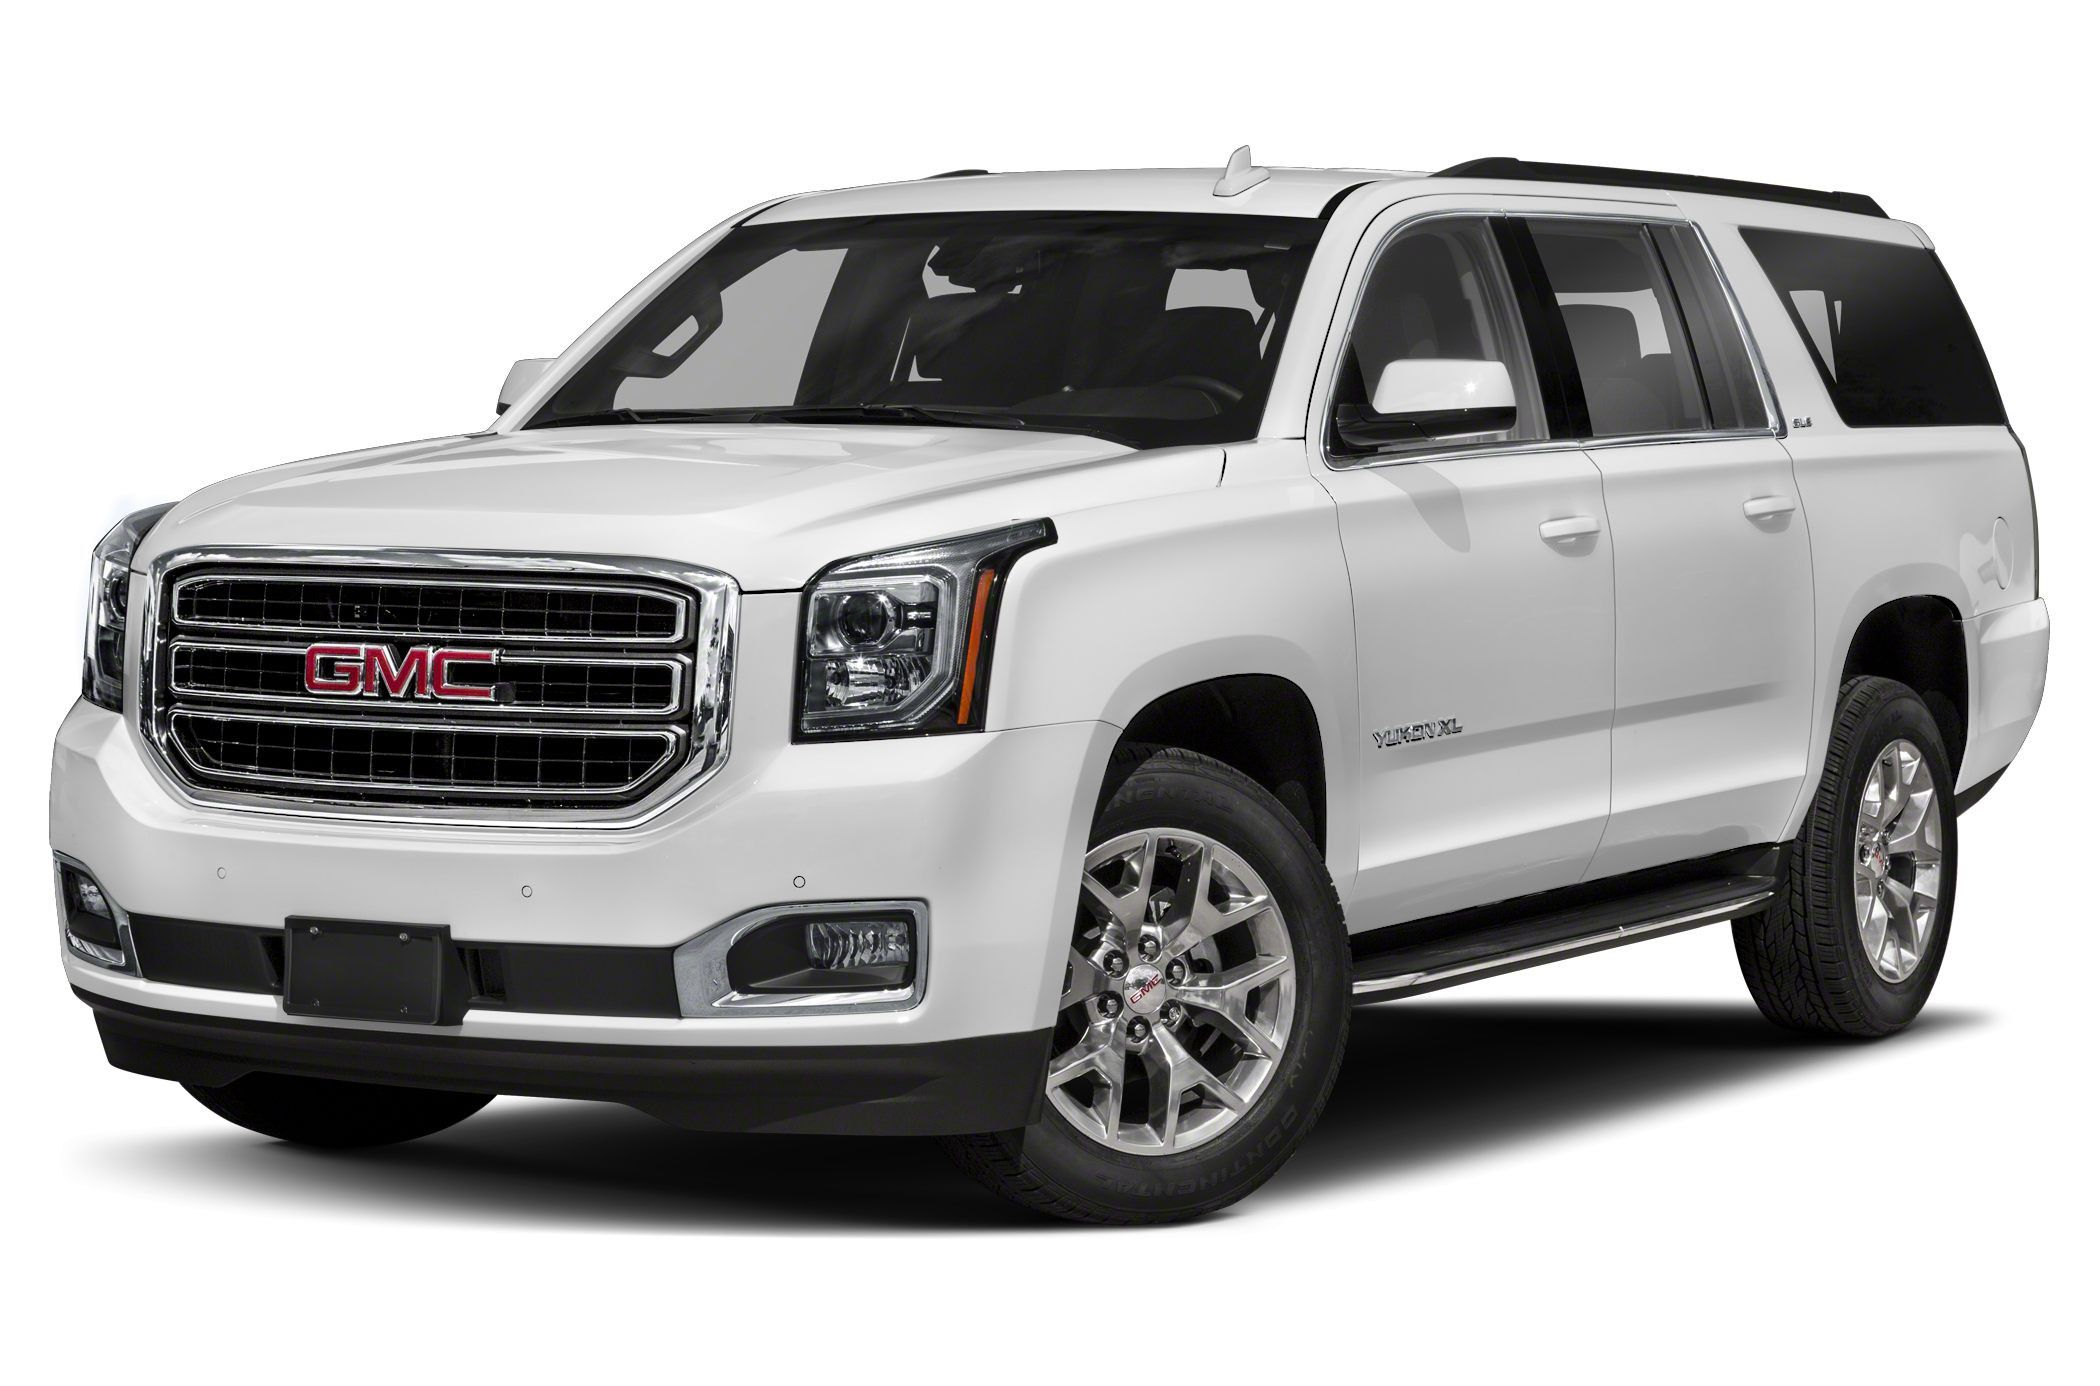 2020 Gmc Yukon Denali Xl Check More At Http Www Autocarblog Club